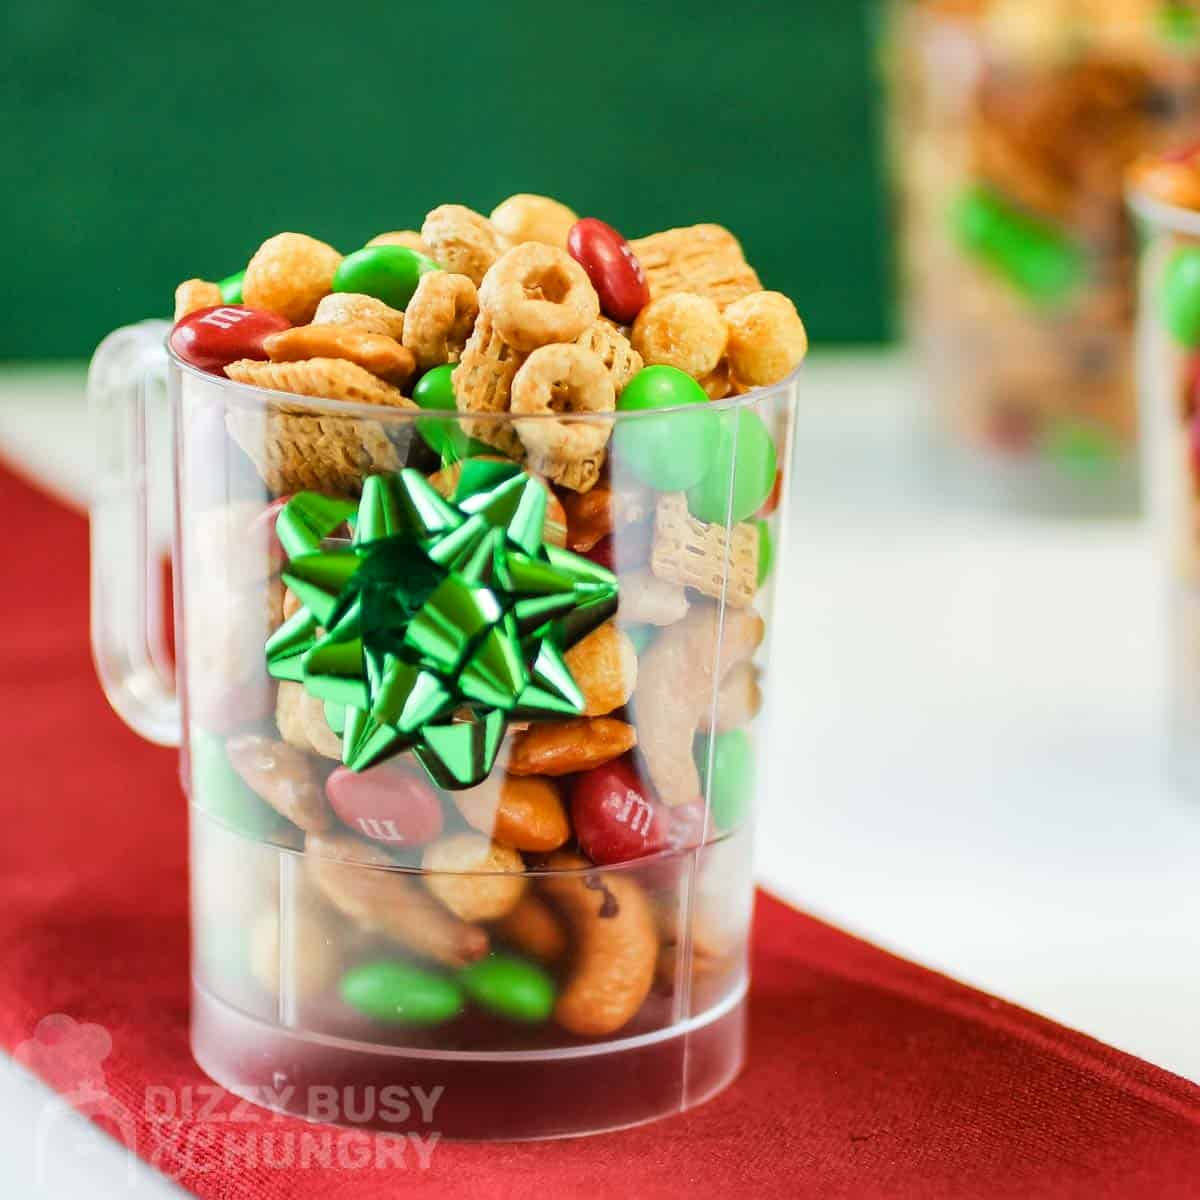 Side view of Christmas snack mix in a clear mug with a green bow on a red cloth.